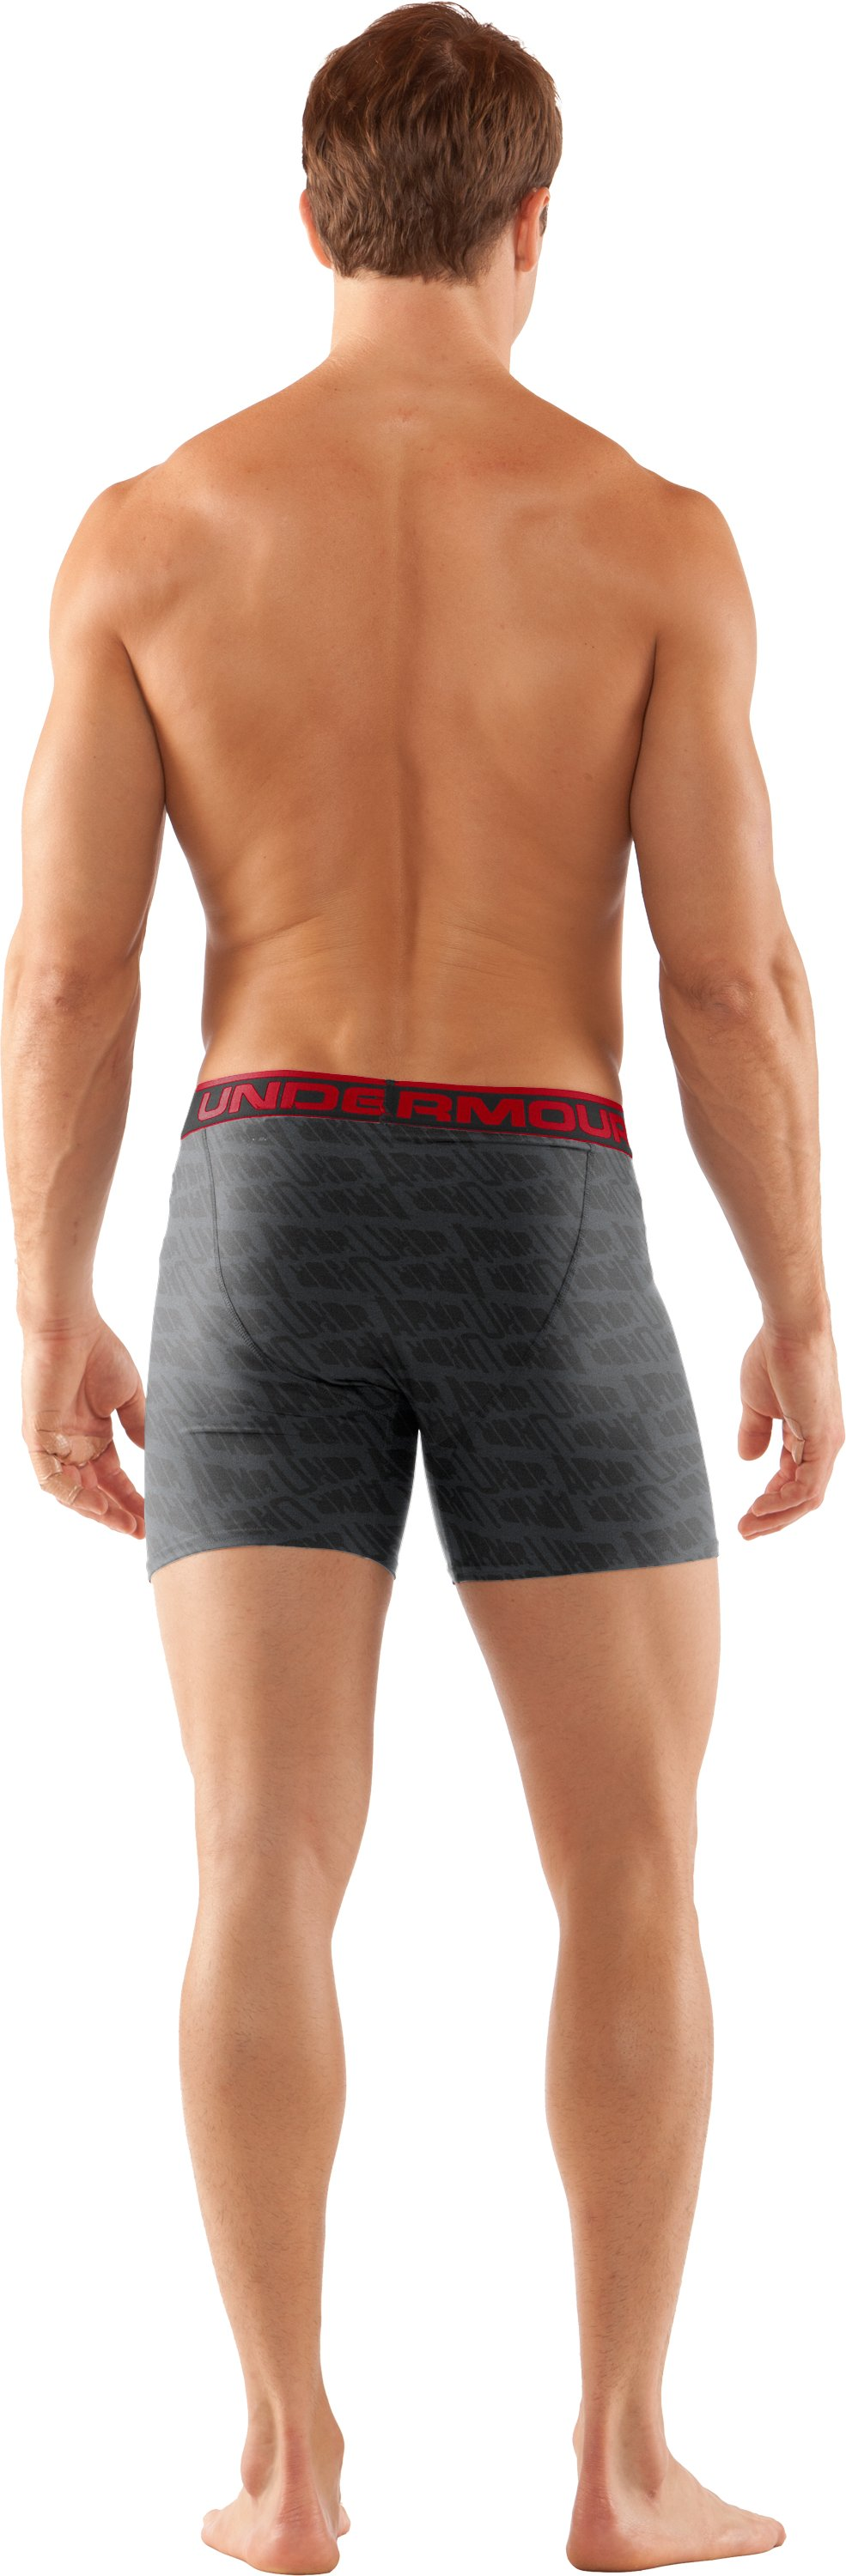 "Men's The Original Printed 6"" Boxerjock® Boxer Briefs, Graphite, Back"